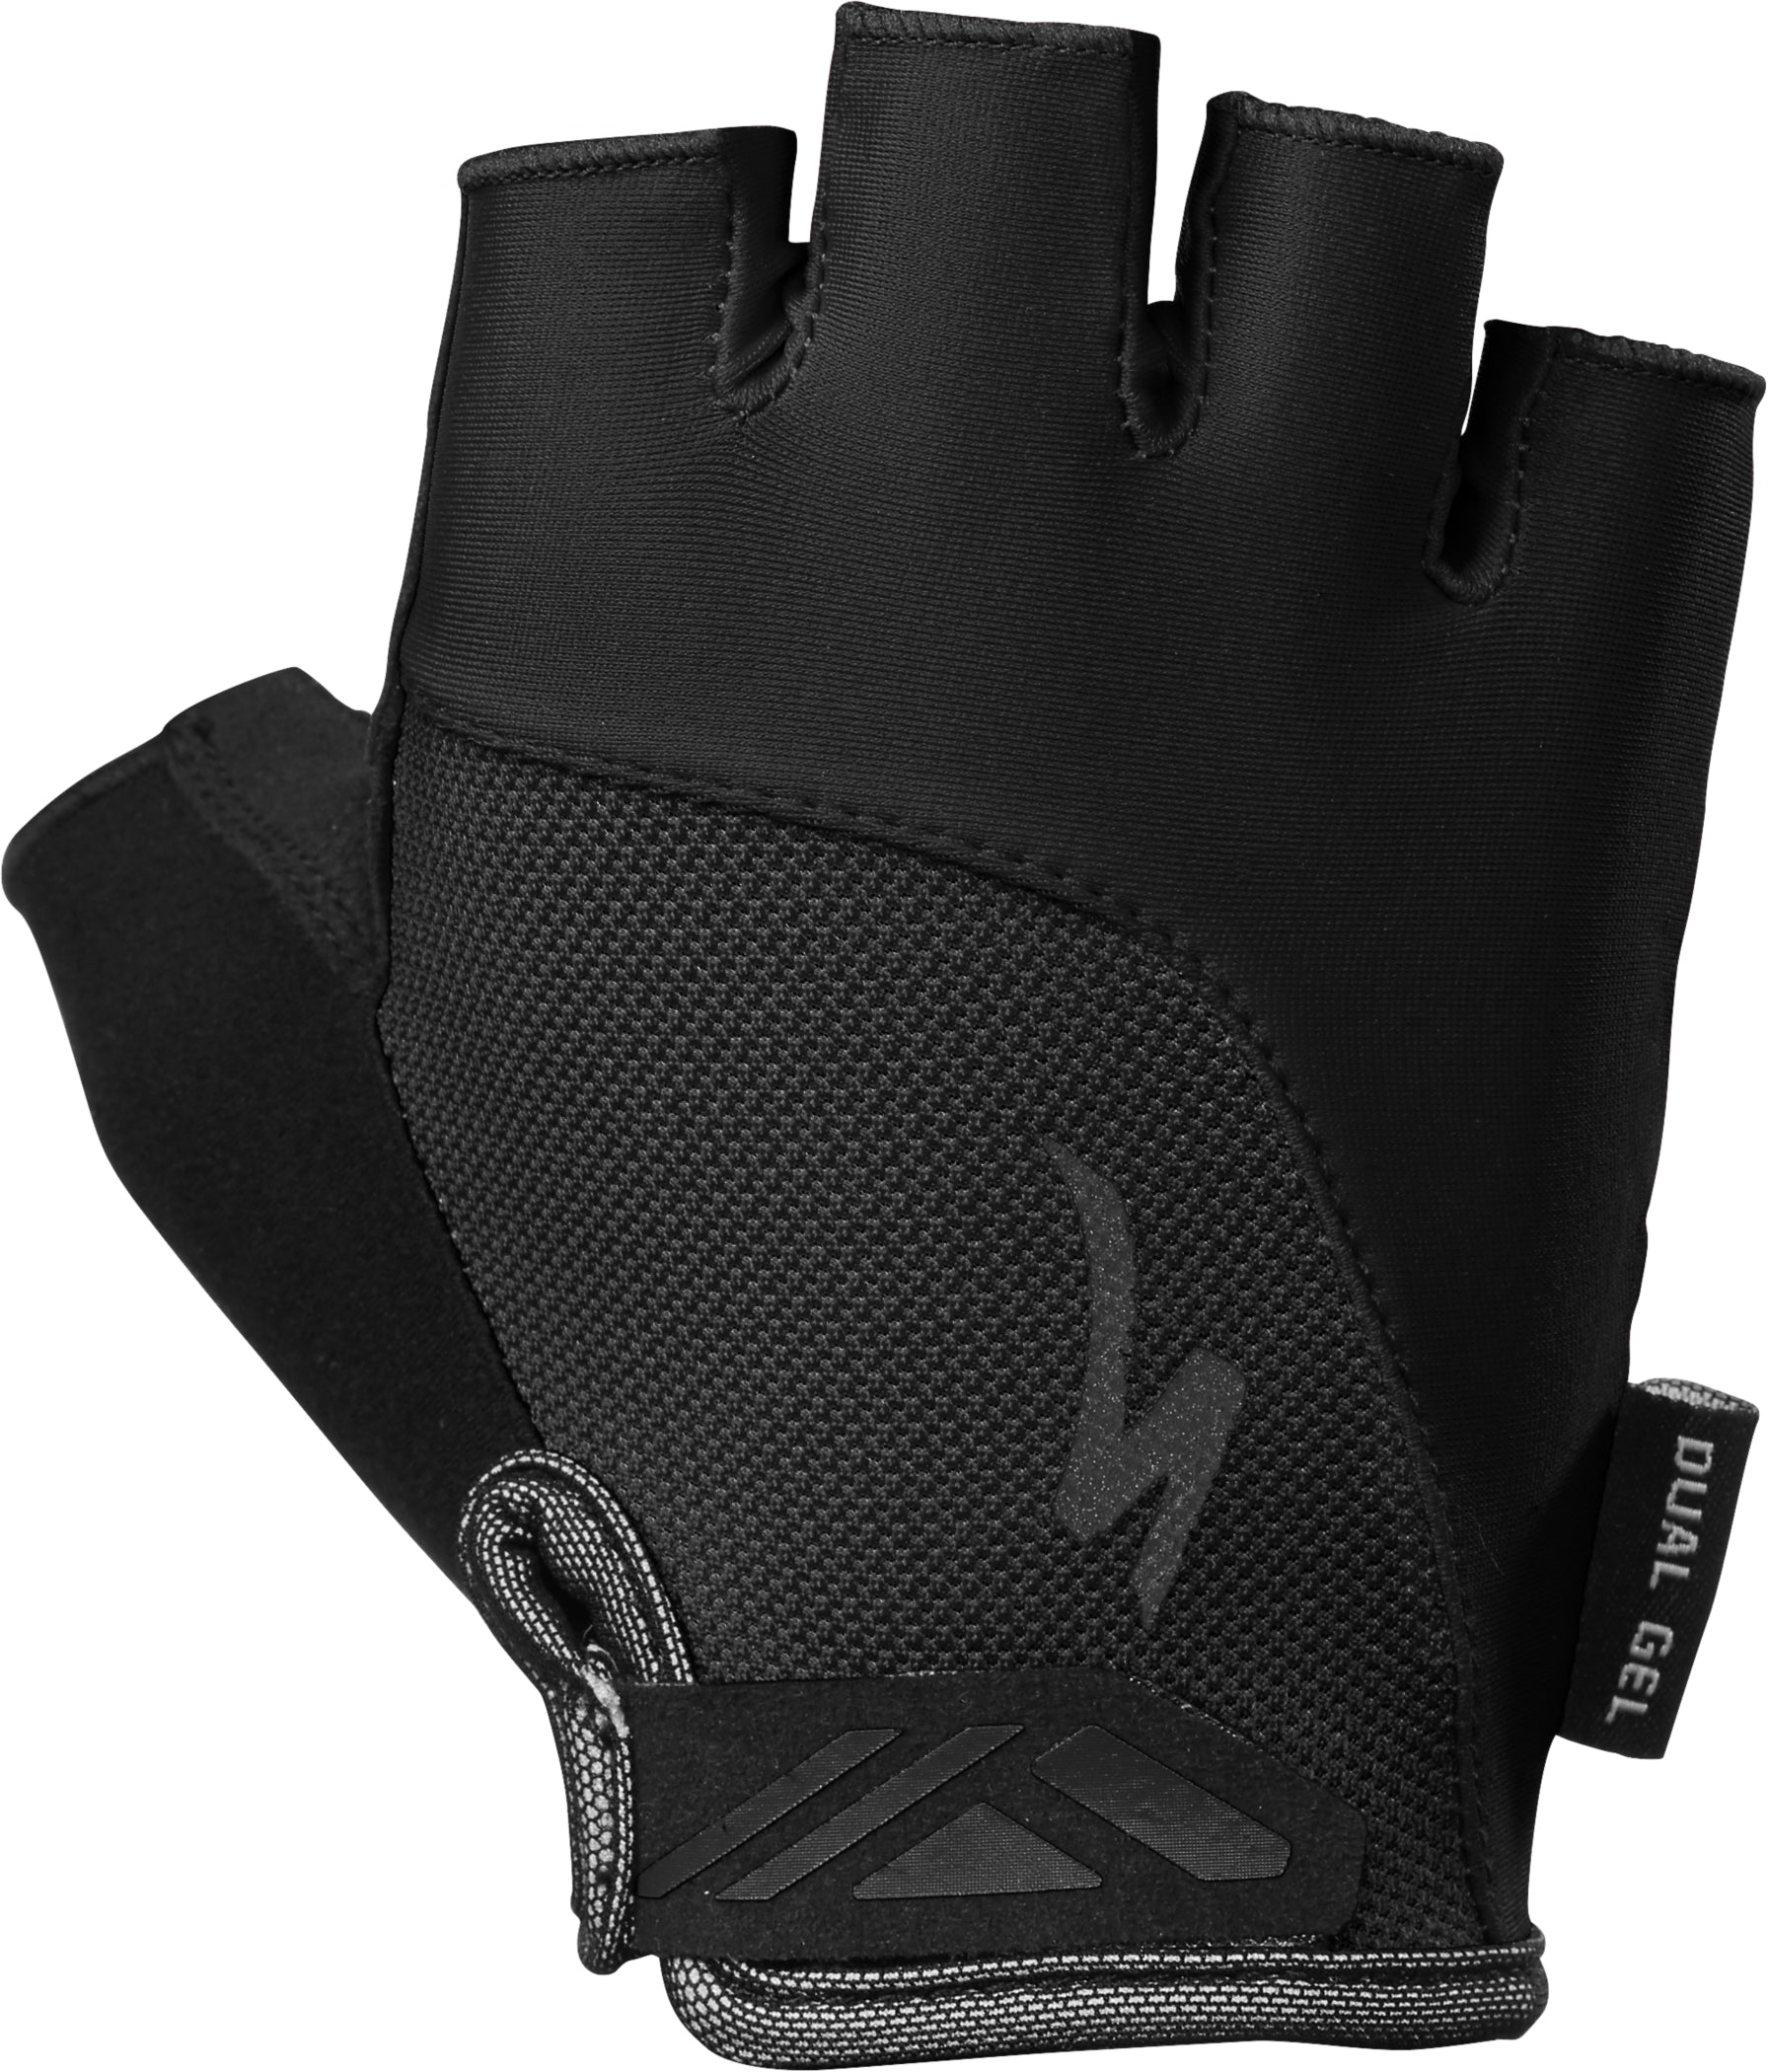 Women's Body Geometry Dual-Gel Gloves